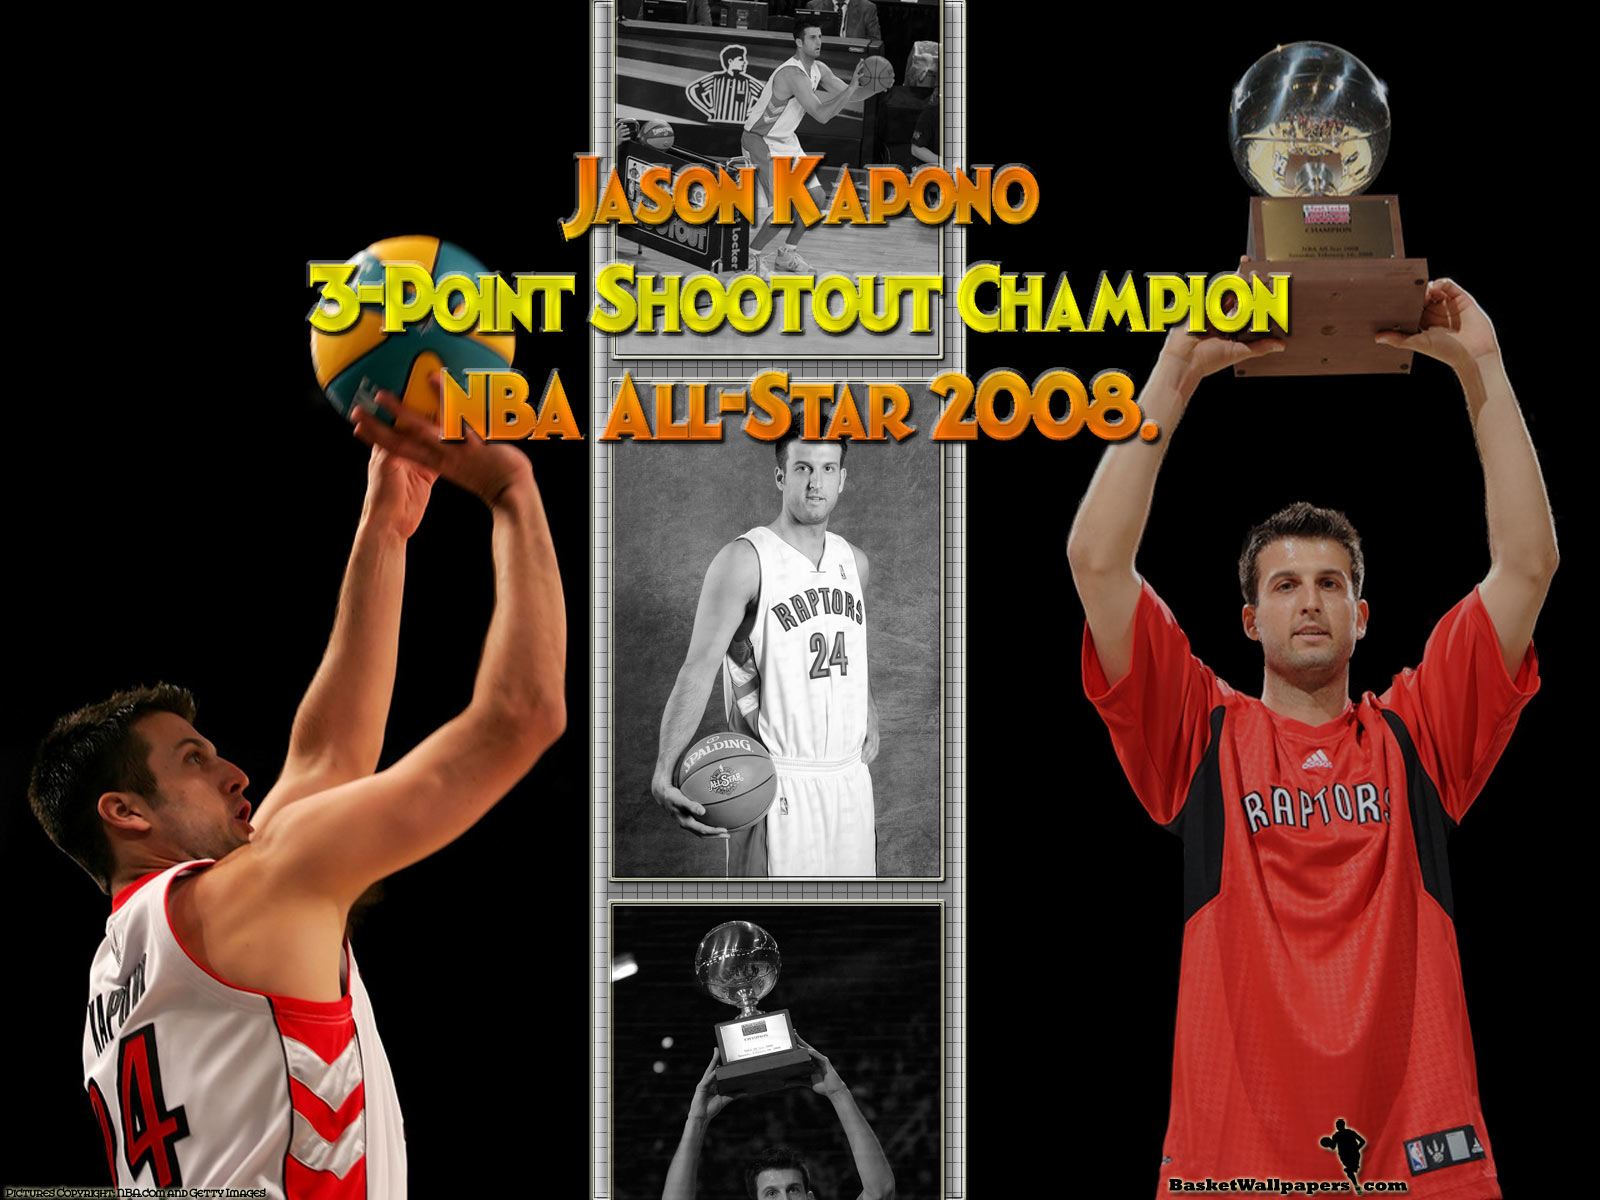 Jason Kapono 2008 3pt Shootout Champion